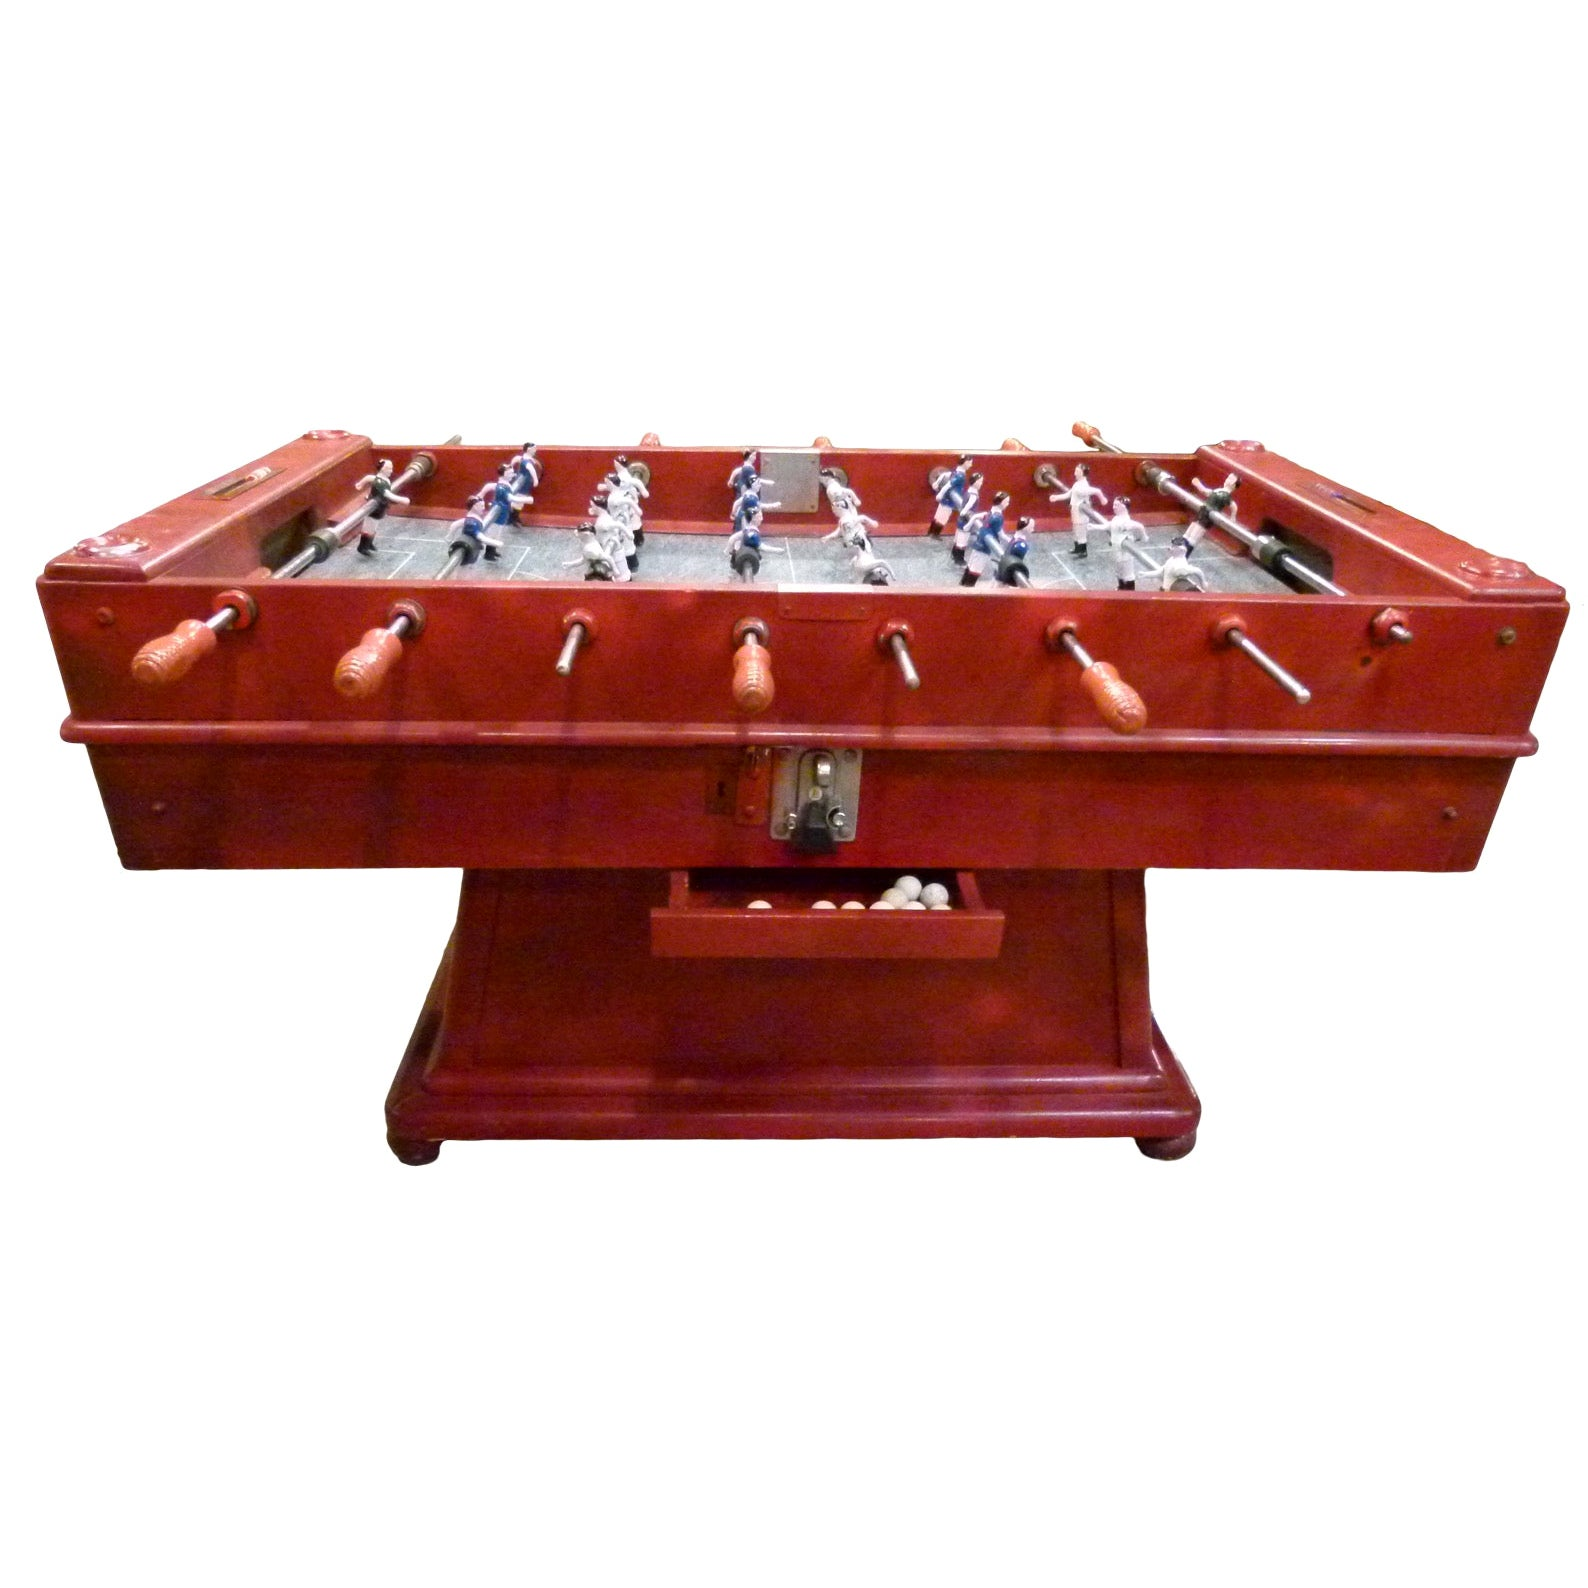 Midcentury Spanish Table Football, Cordoba Model